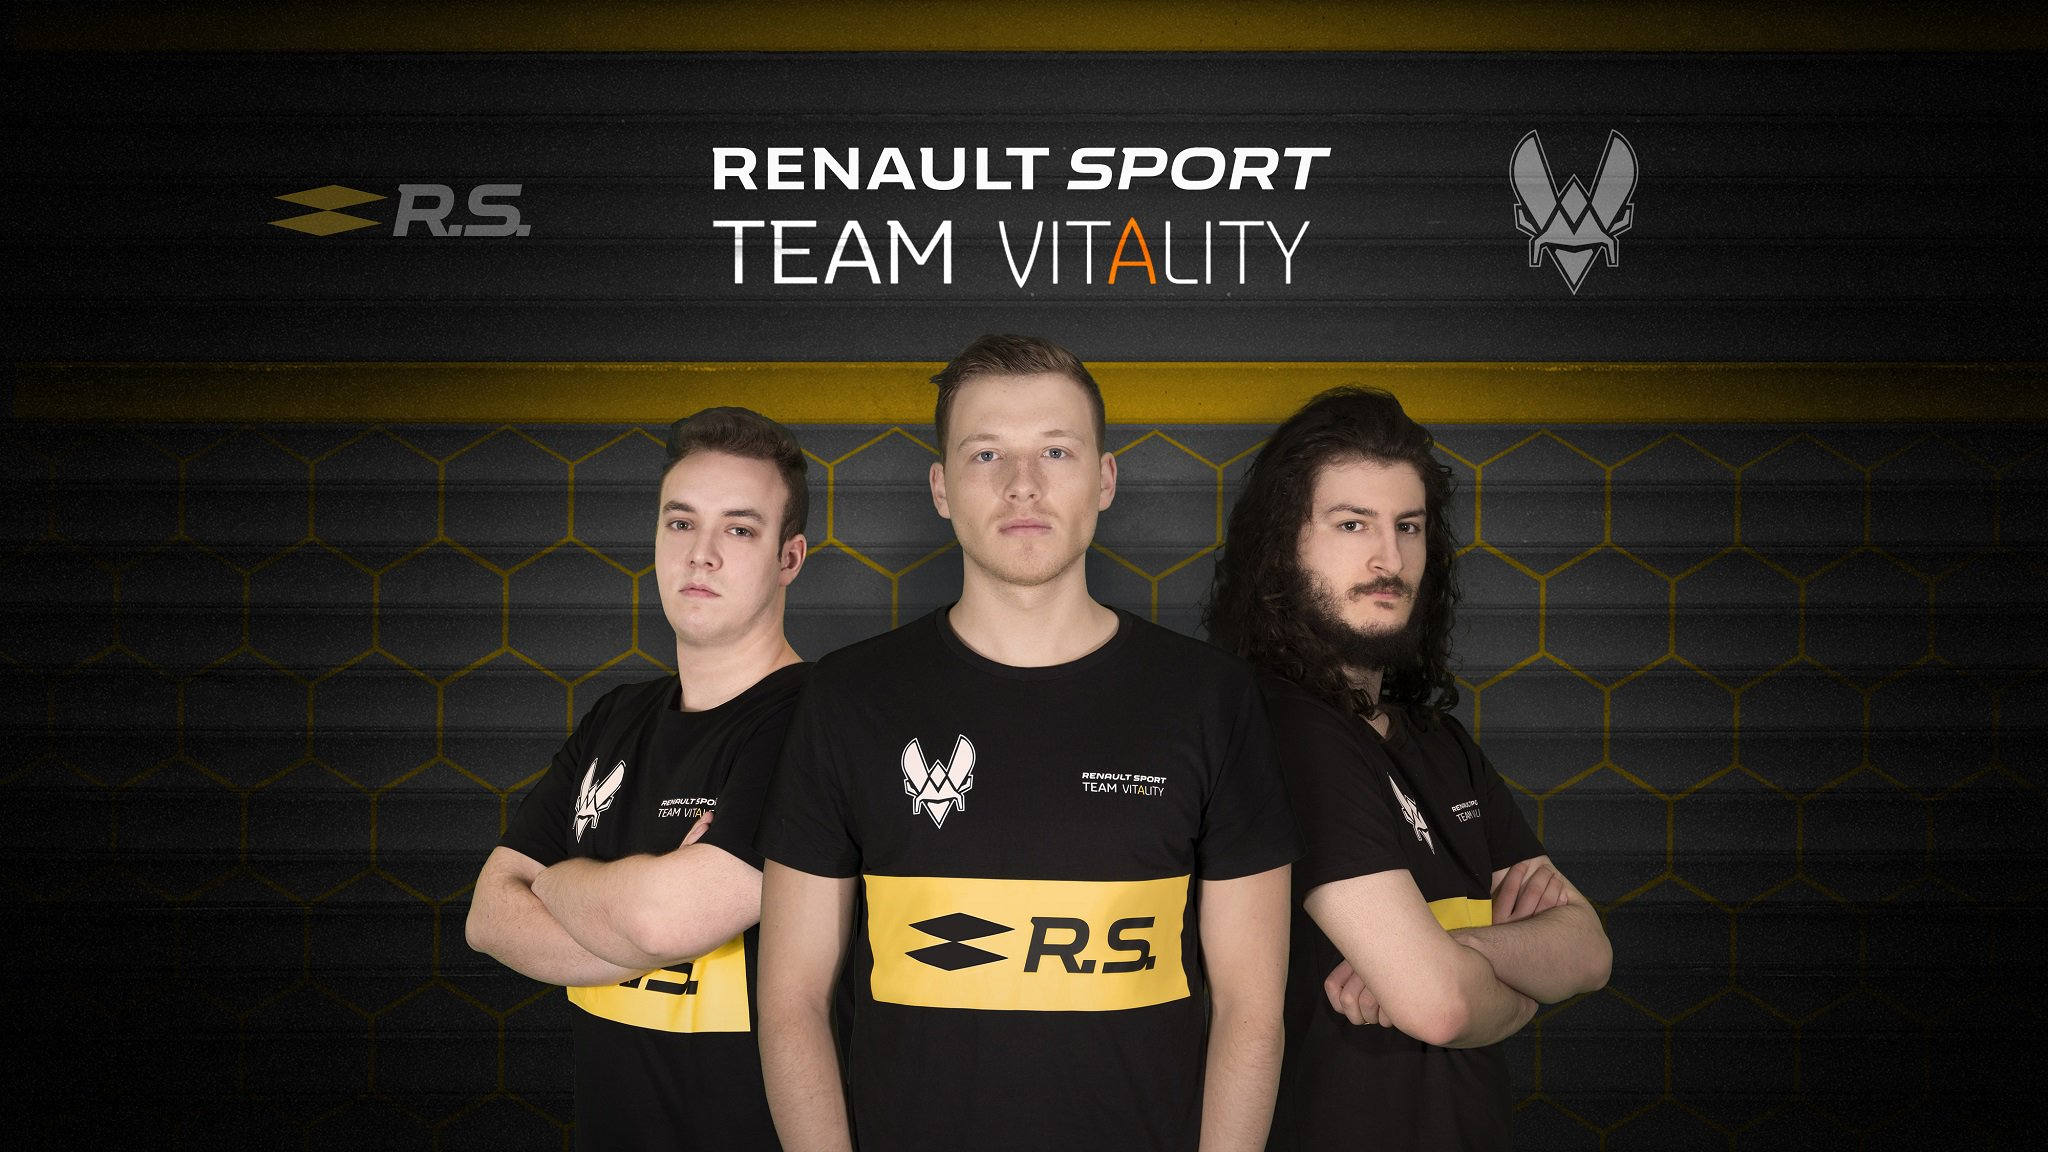 Team Vitality Rocket League esports